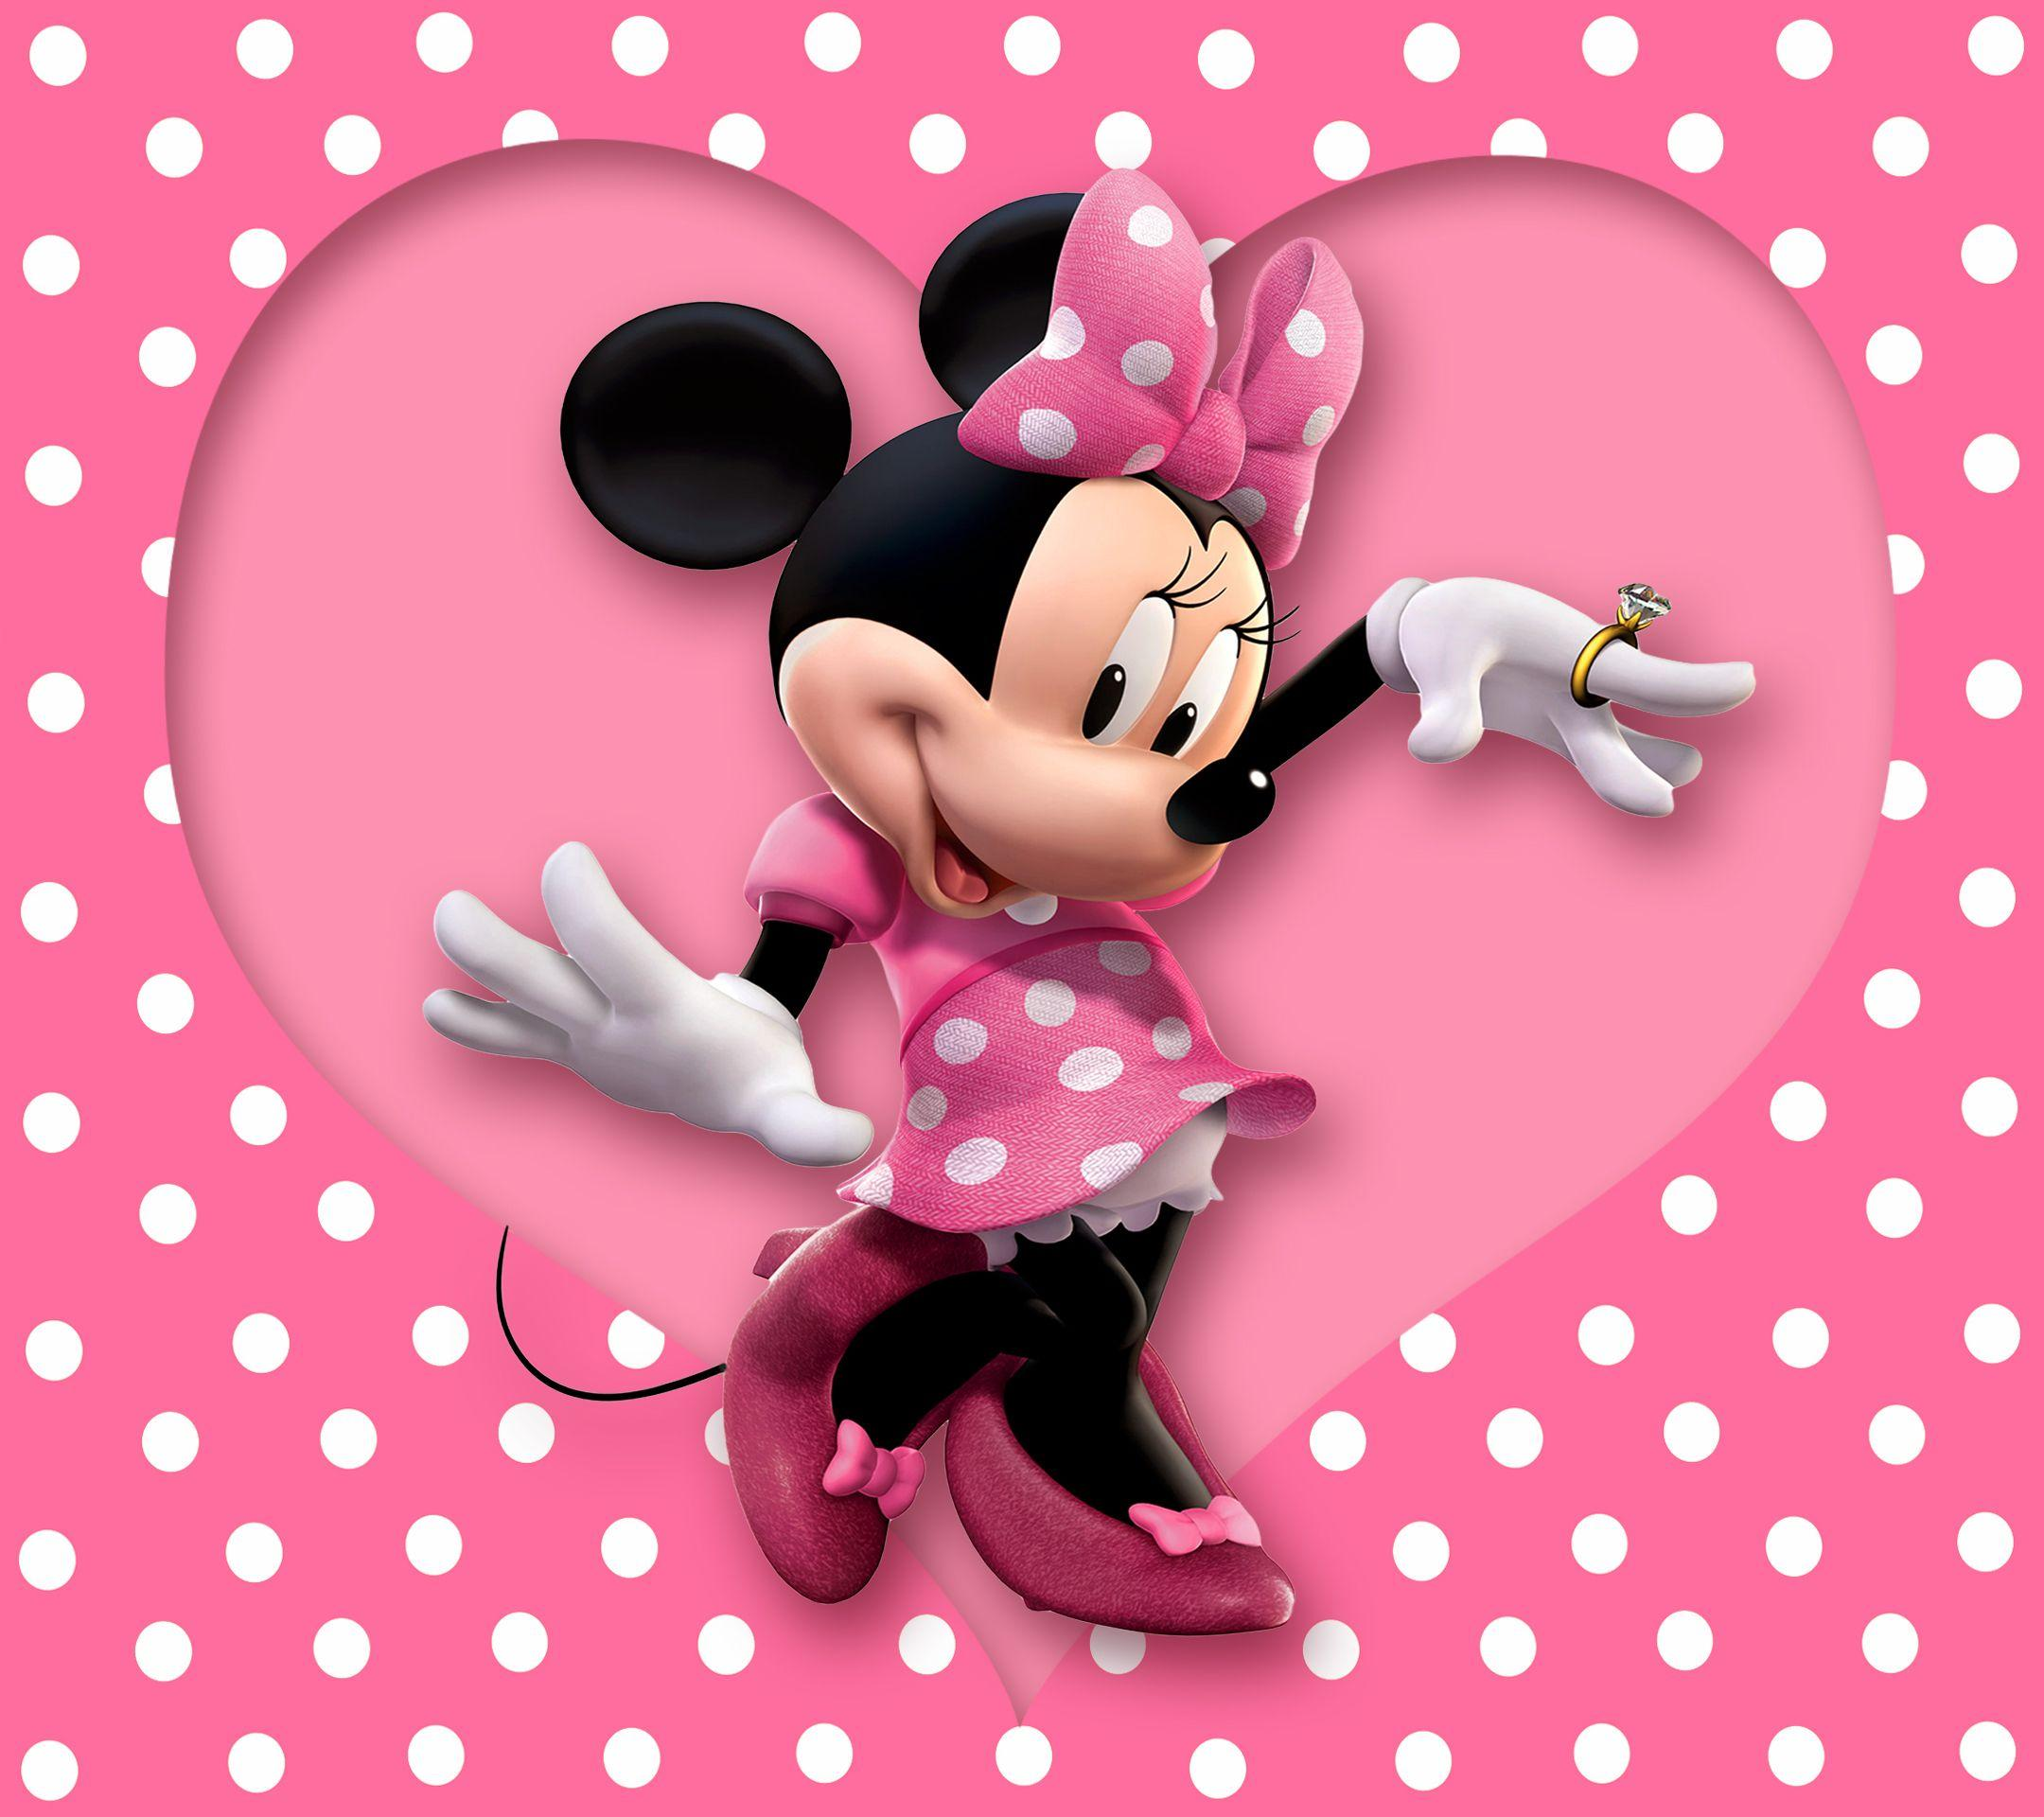 Minnie Mouse Hd Wallpapers Wallpaper Cave